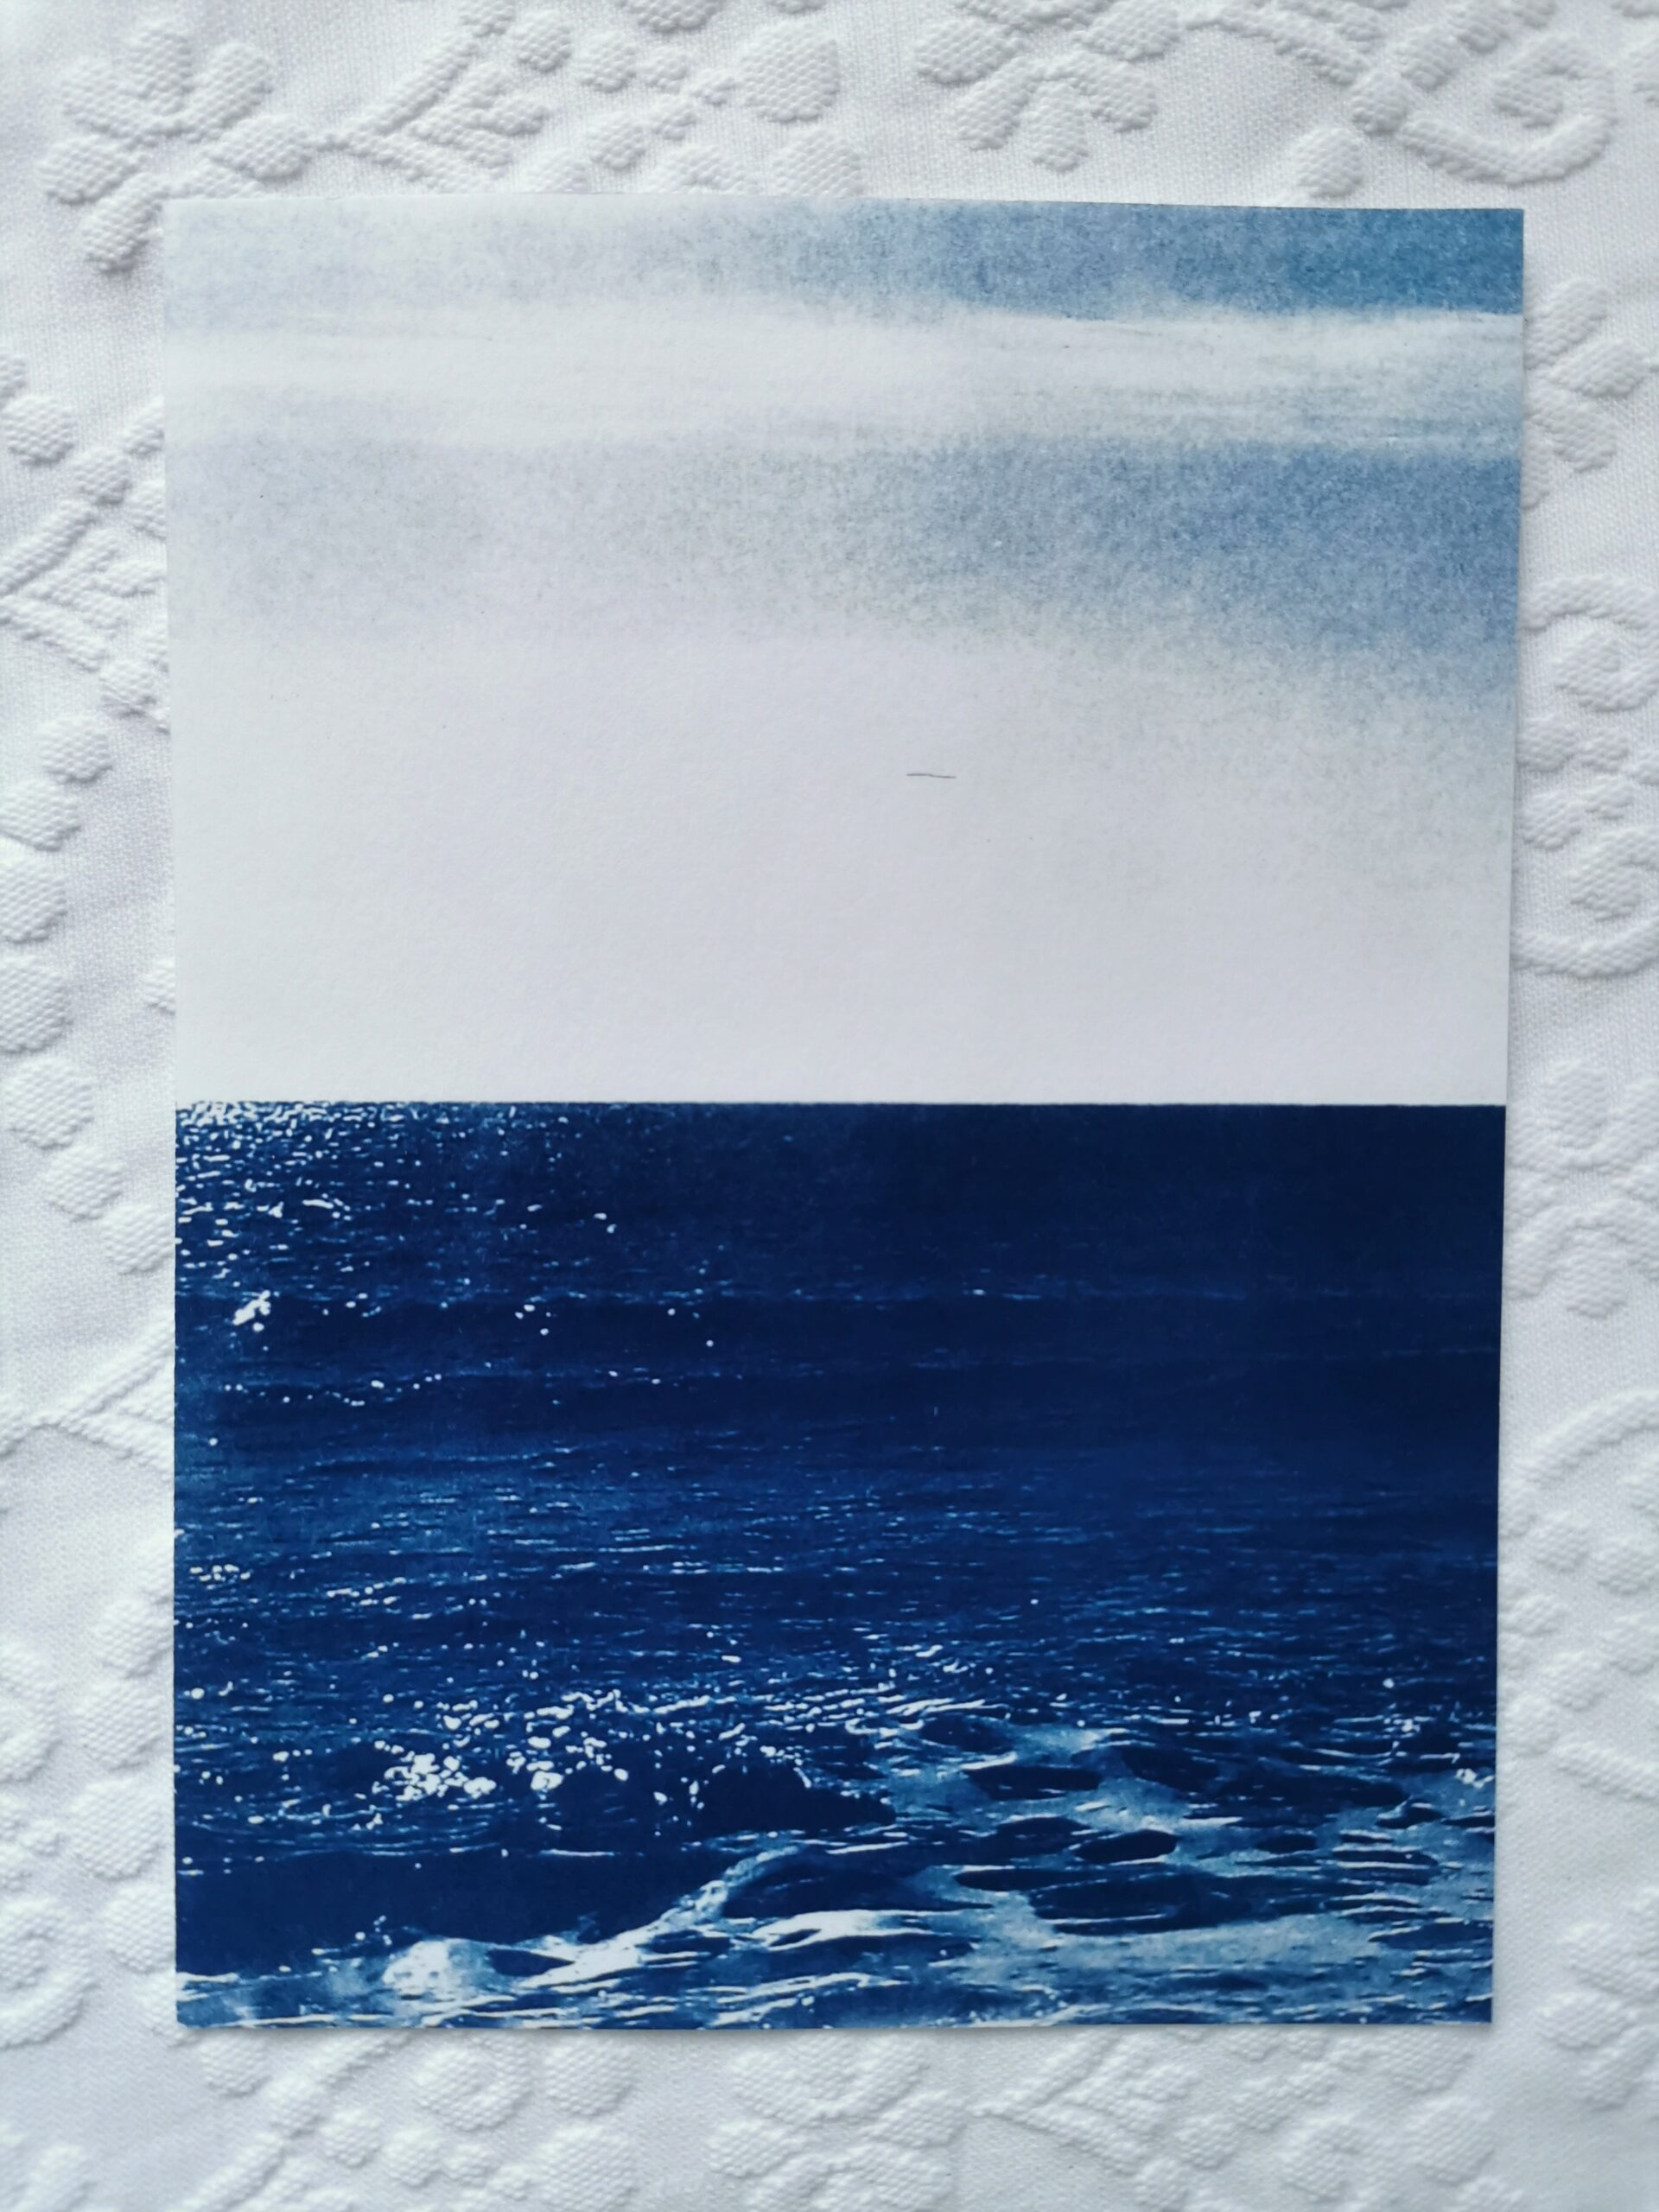 print from photographic negative printing with the ancient technique of cyanotype or printing with the sun